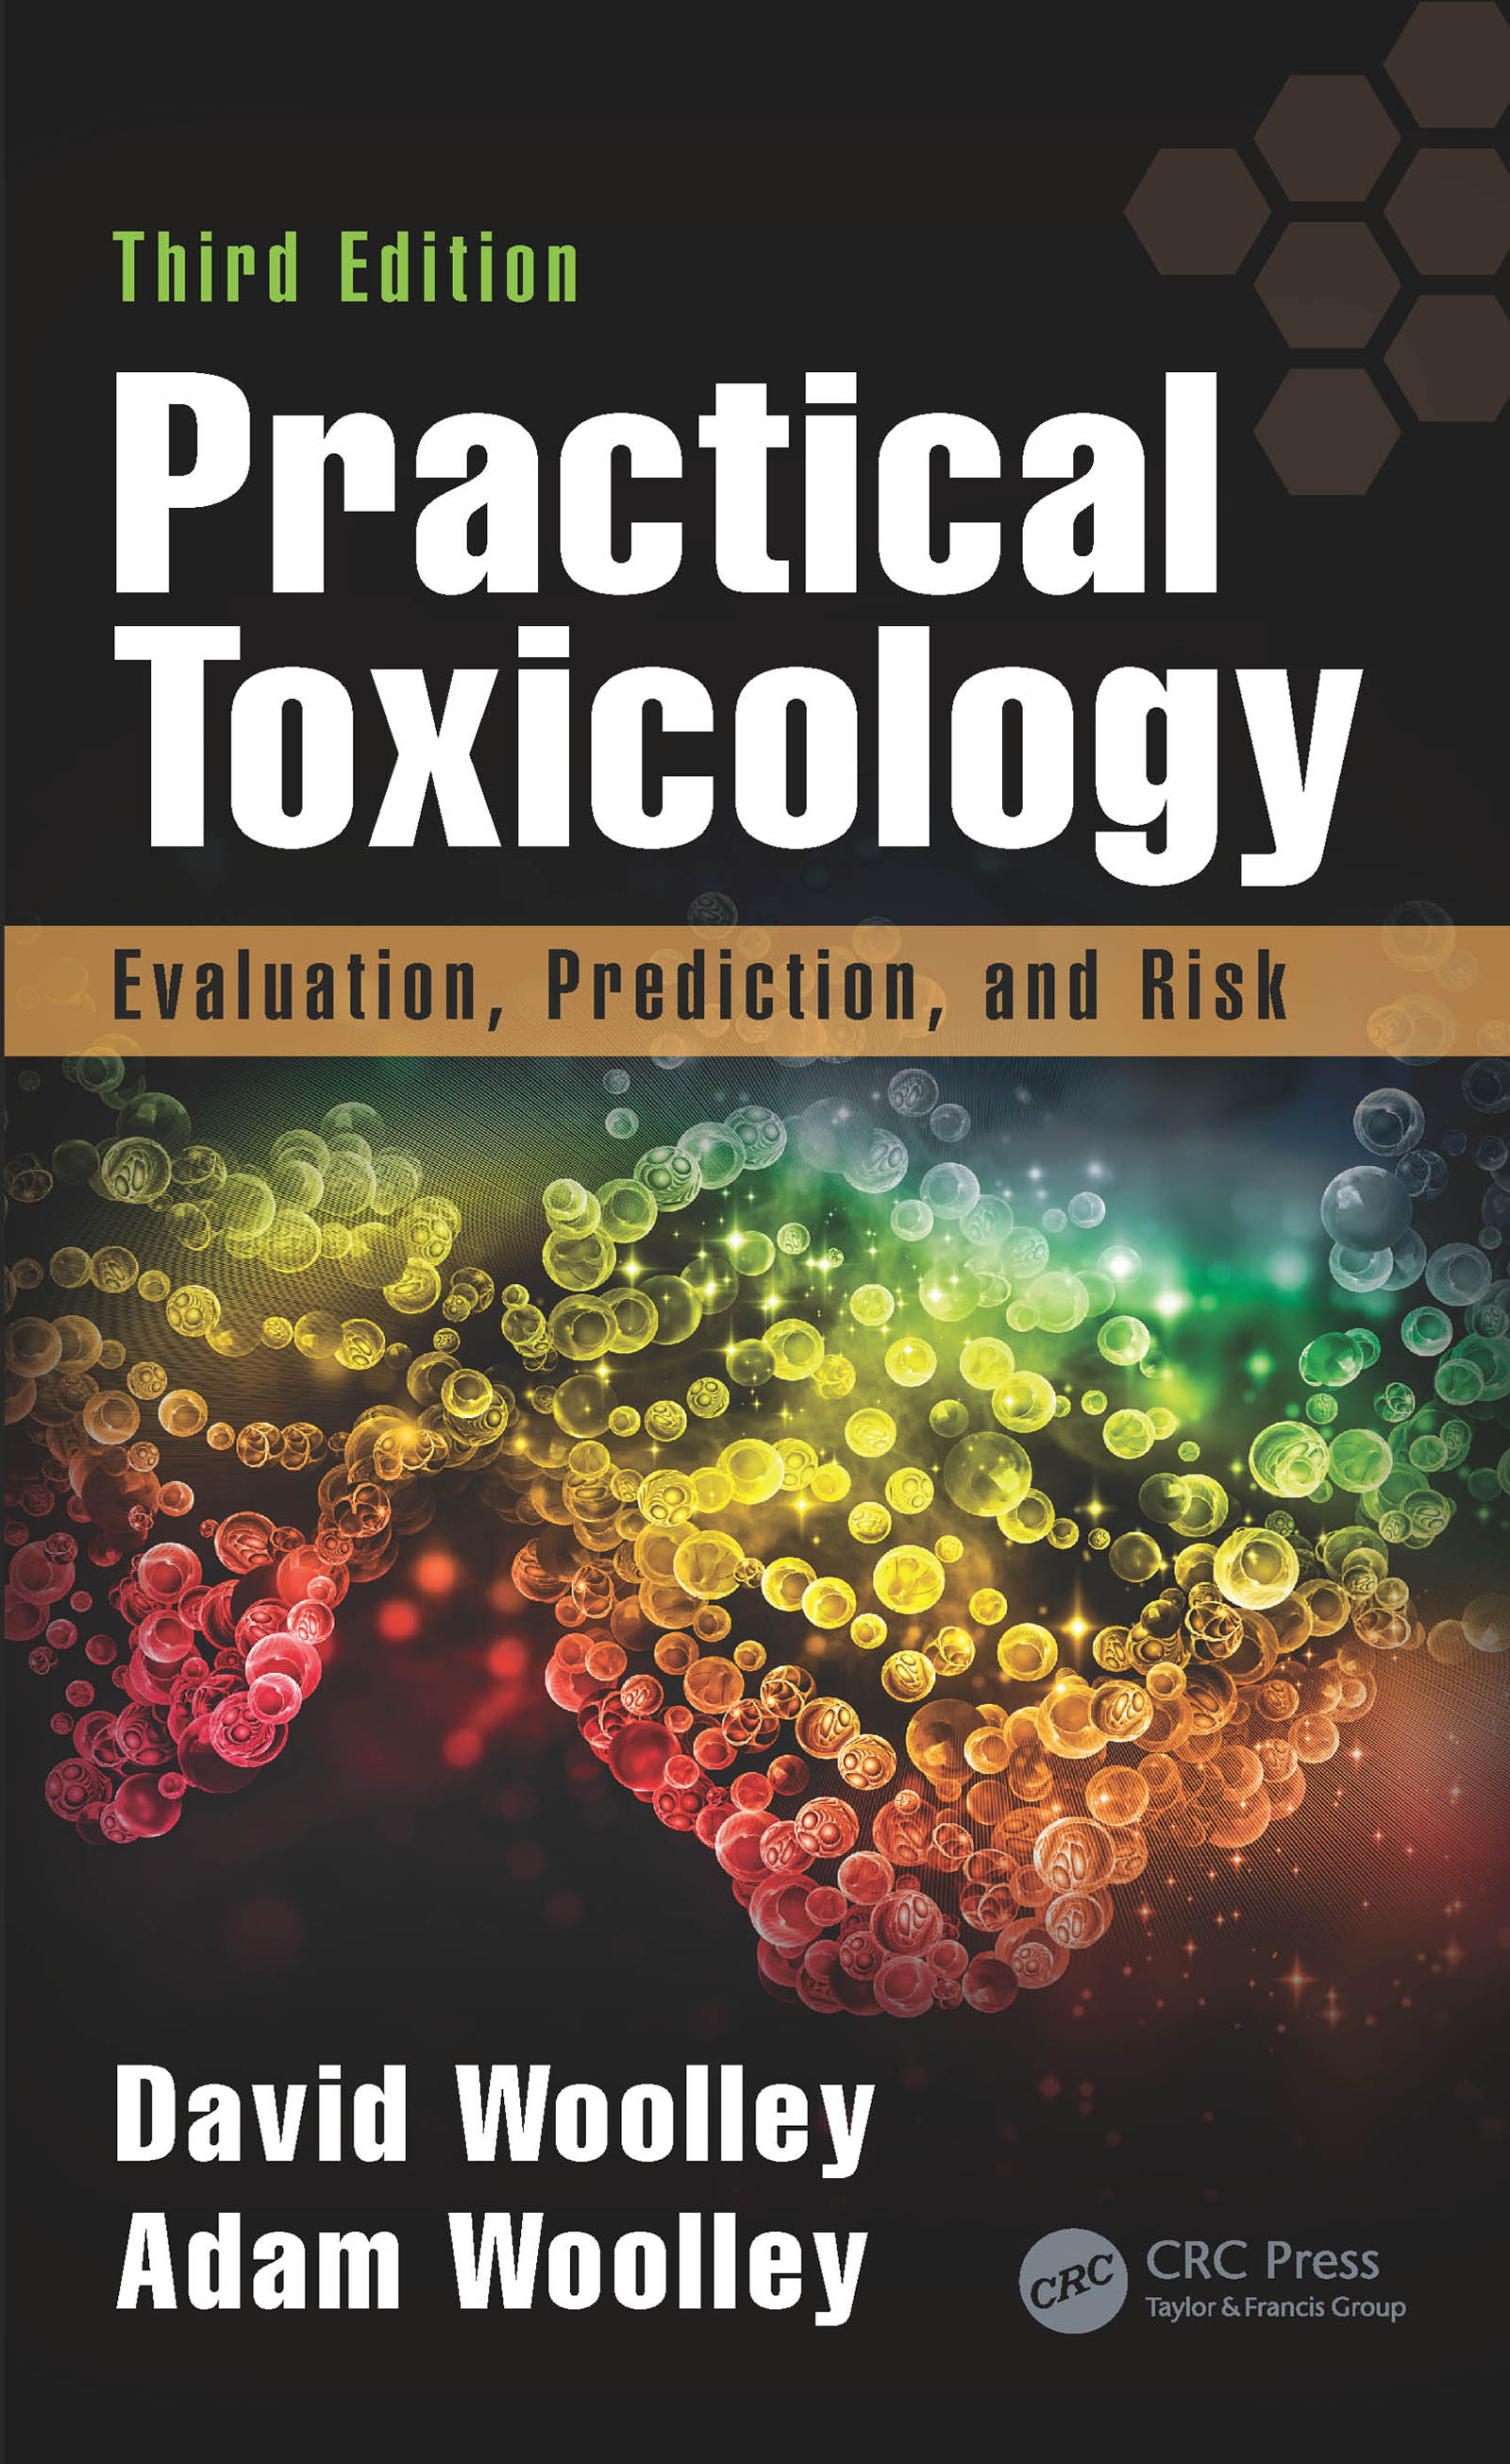 Practical Toxicology: Evaluation, Prediction, and Risk, Third Edition book cover